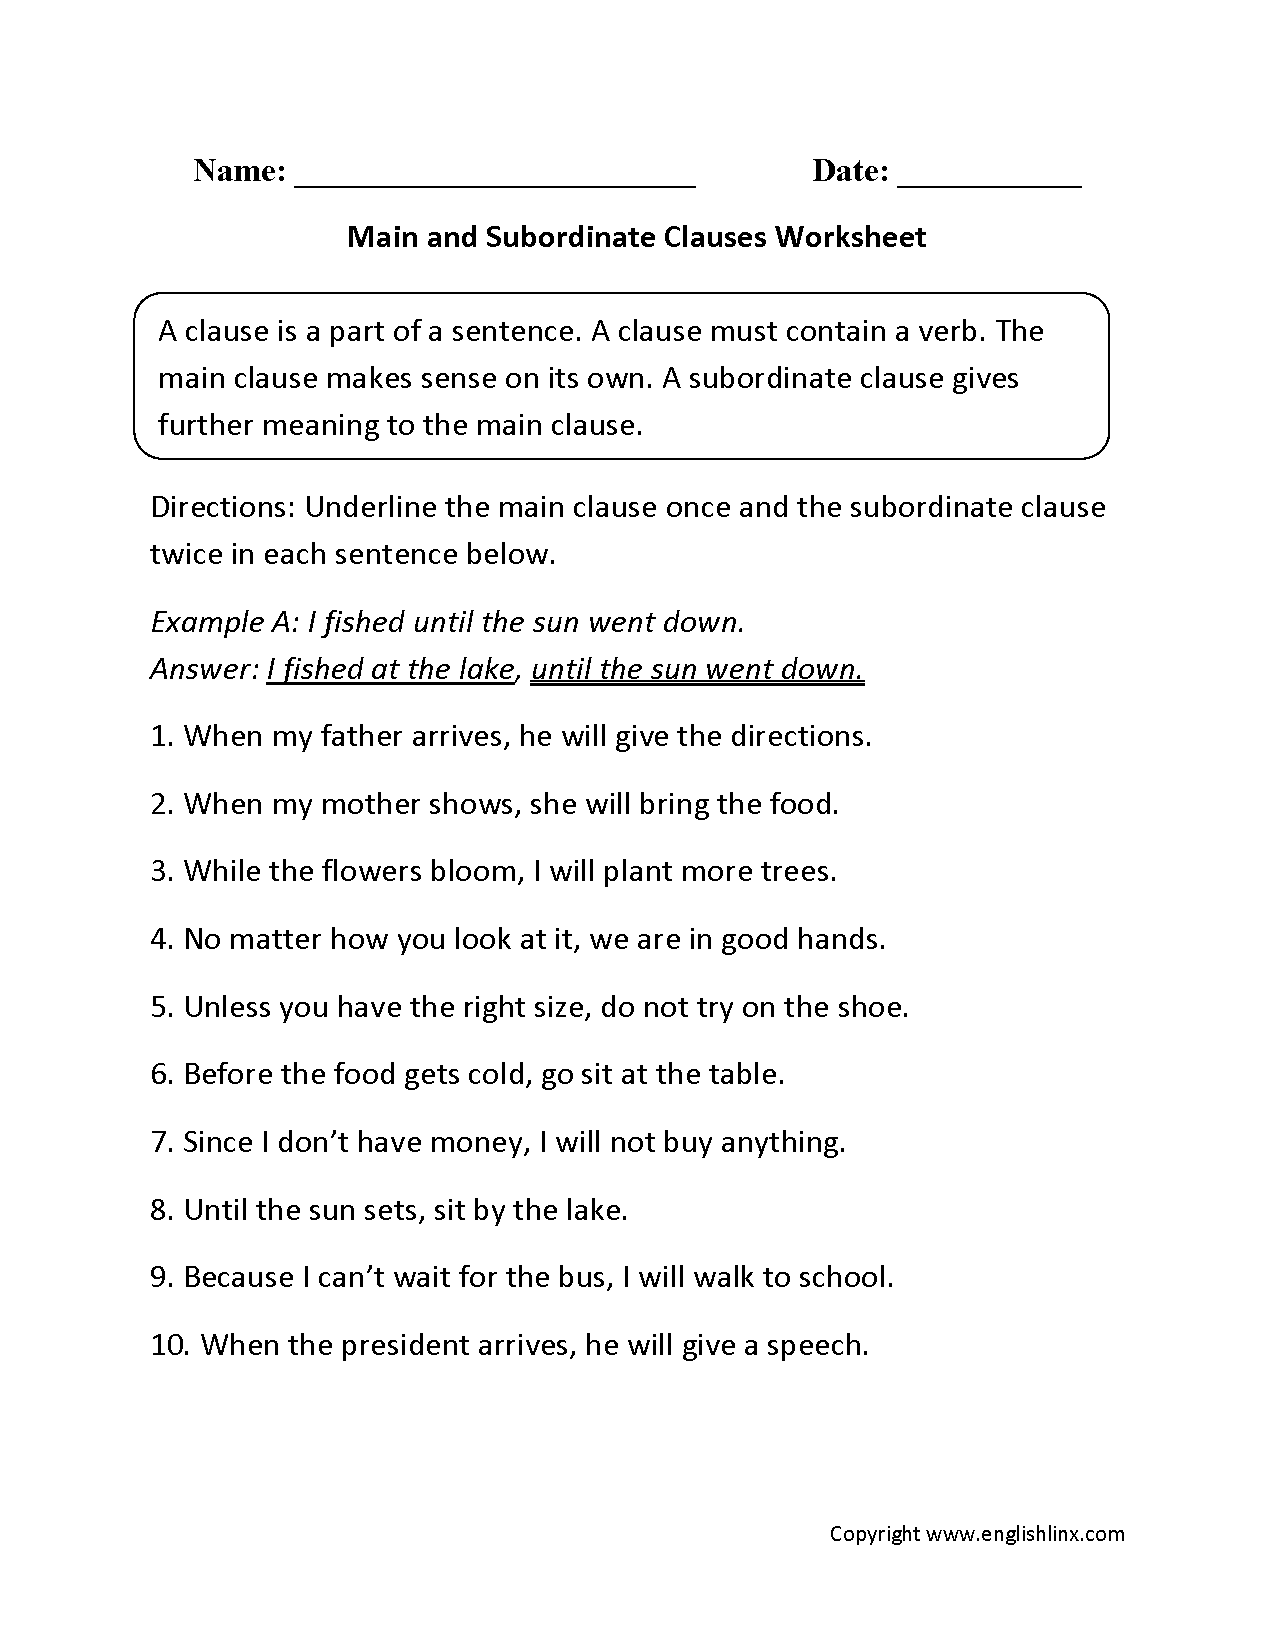 Main And Subordinate Clauses Worksheet